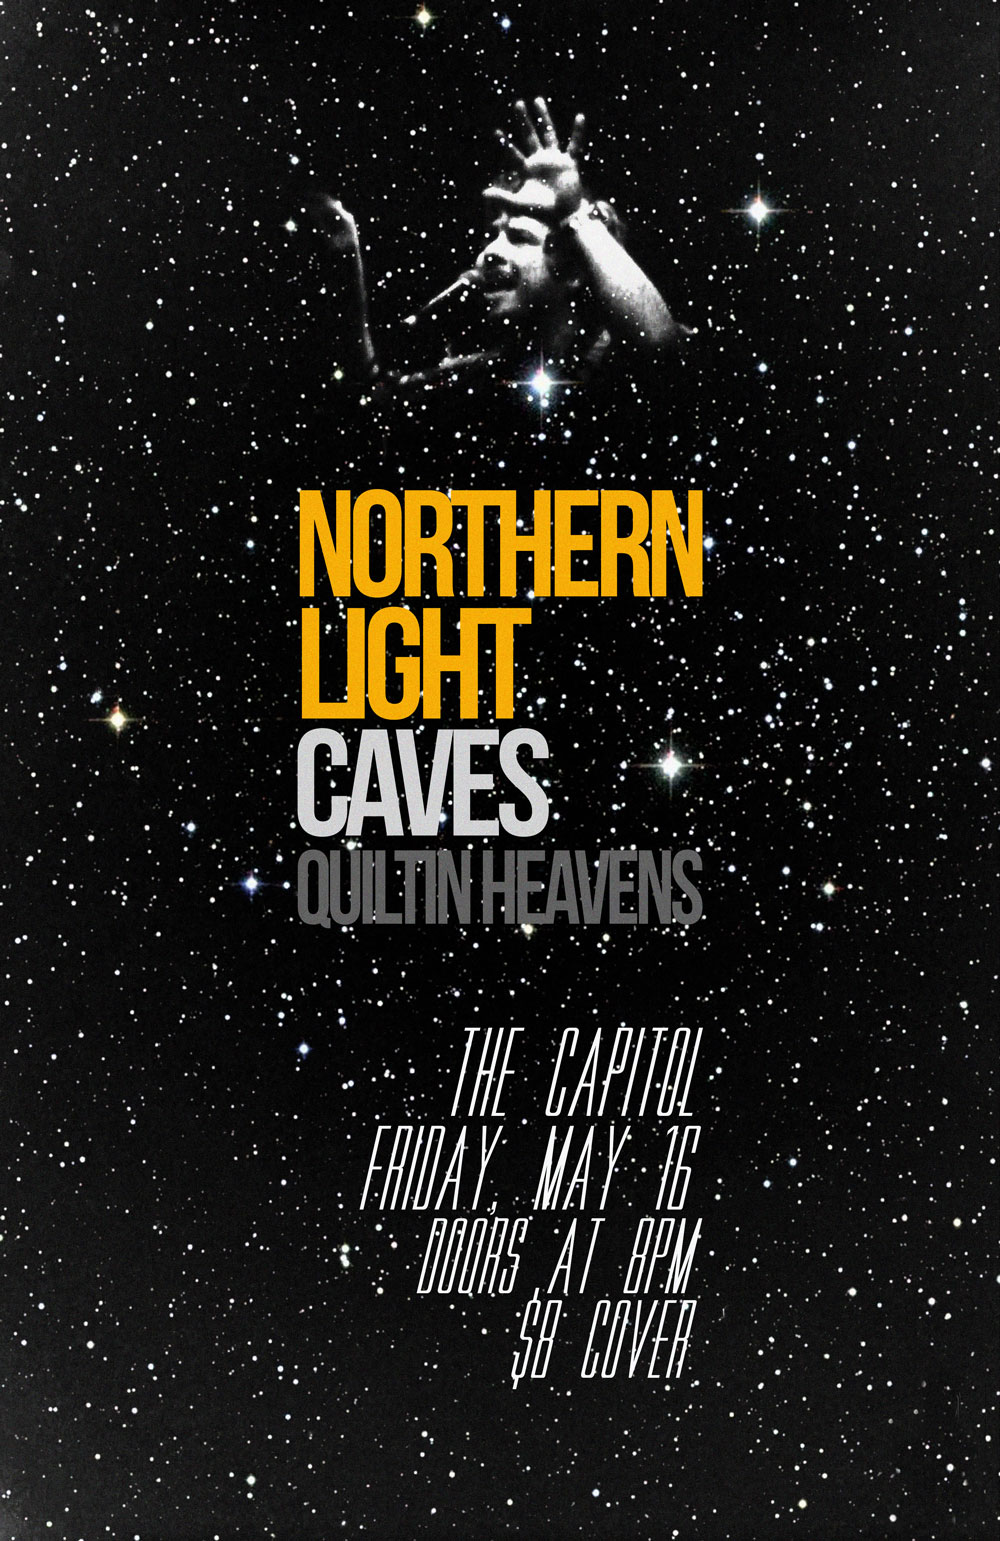 NORTHERN-LIGHT-may2014Poster_smJPEG.jpg